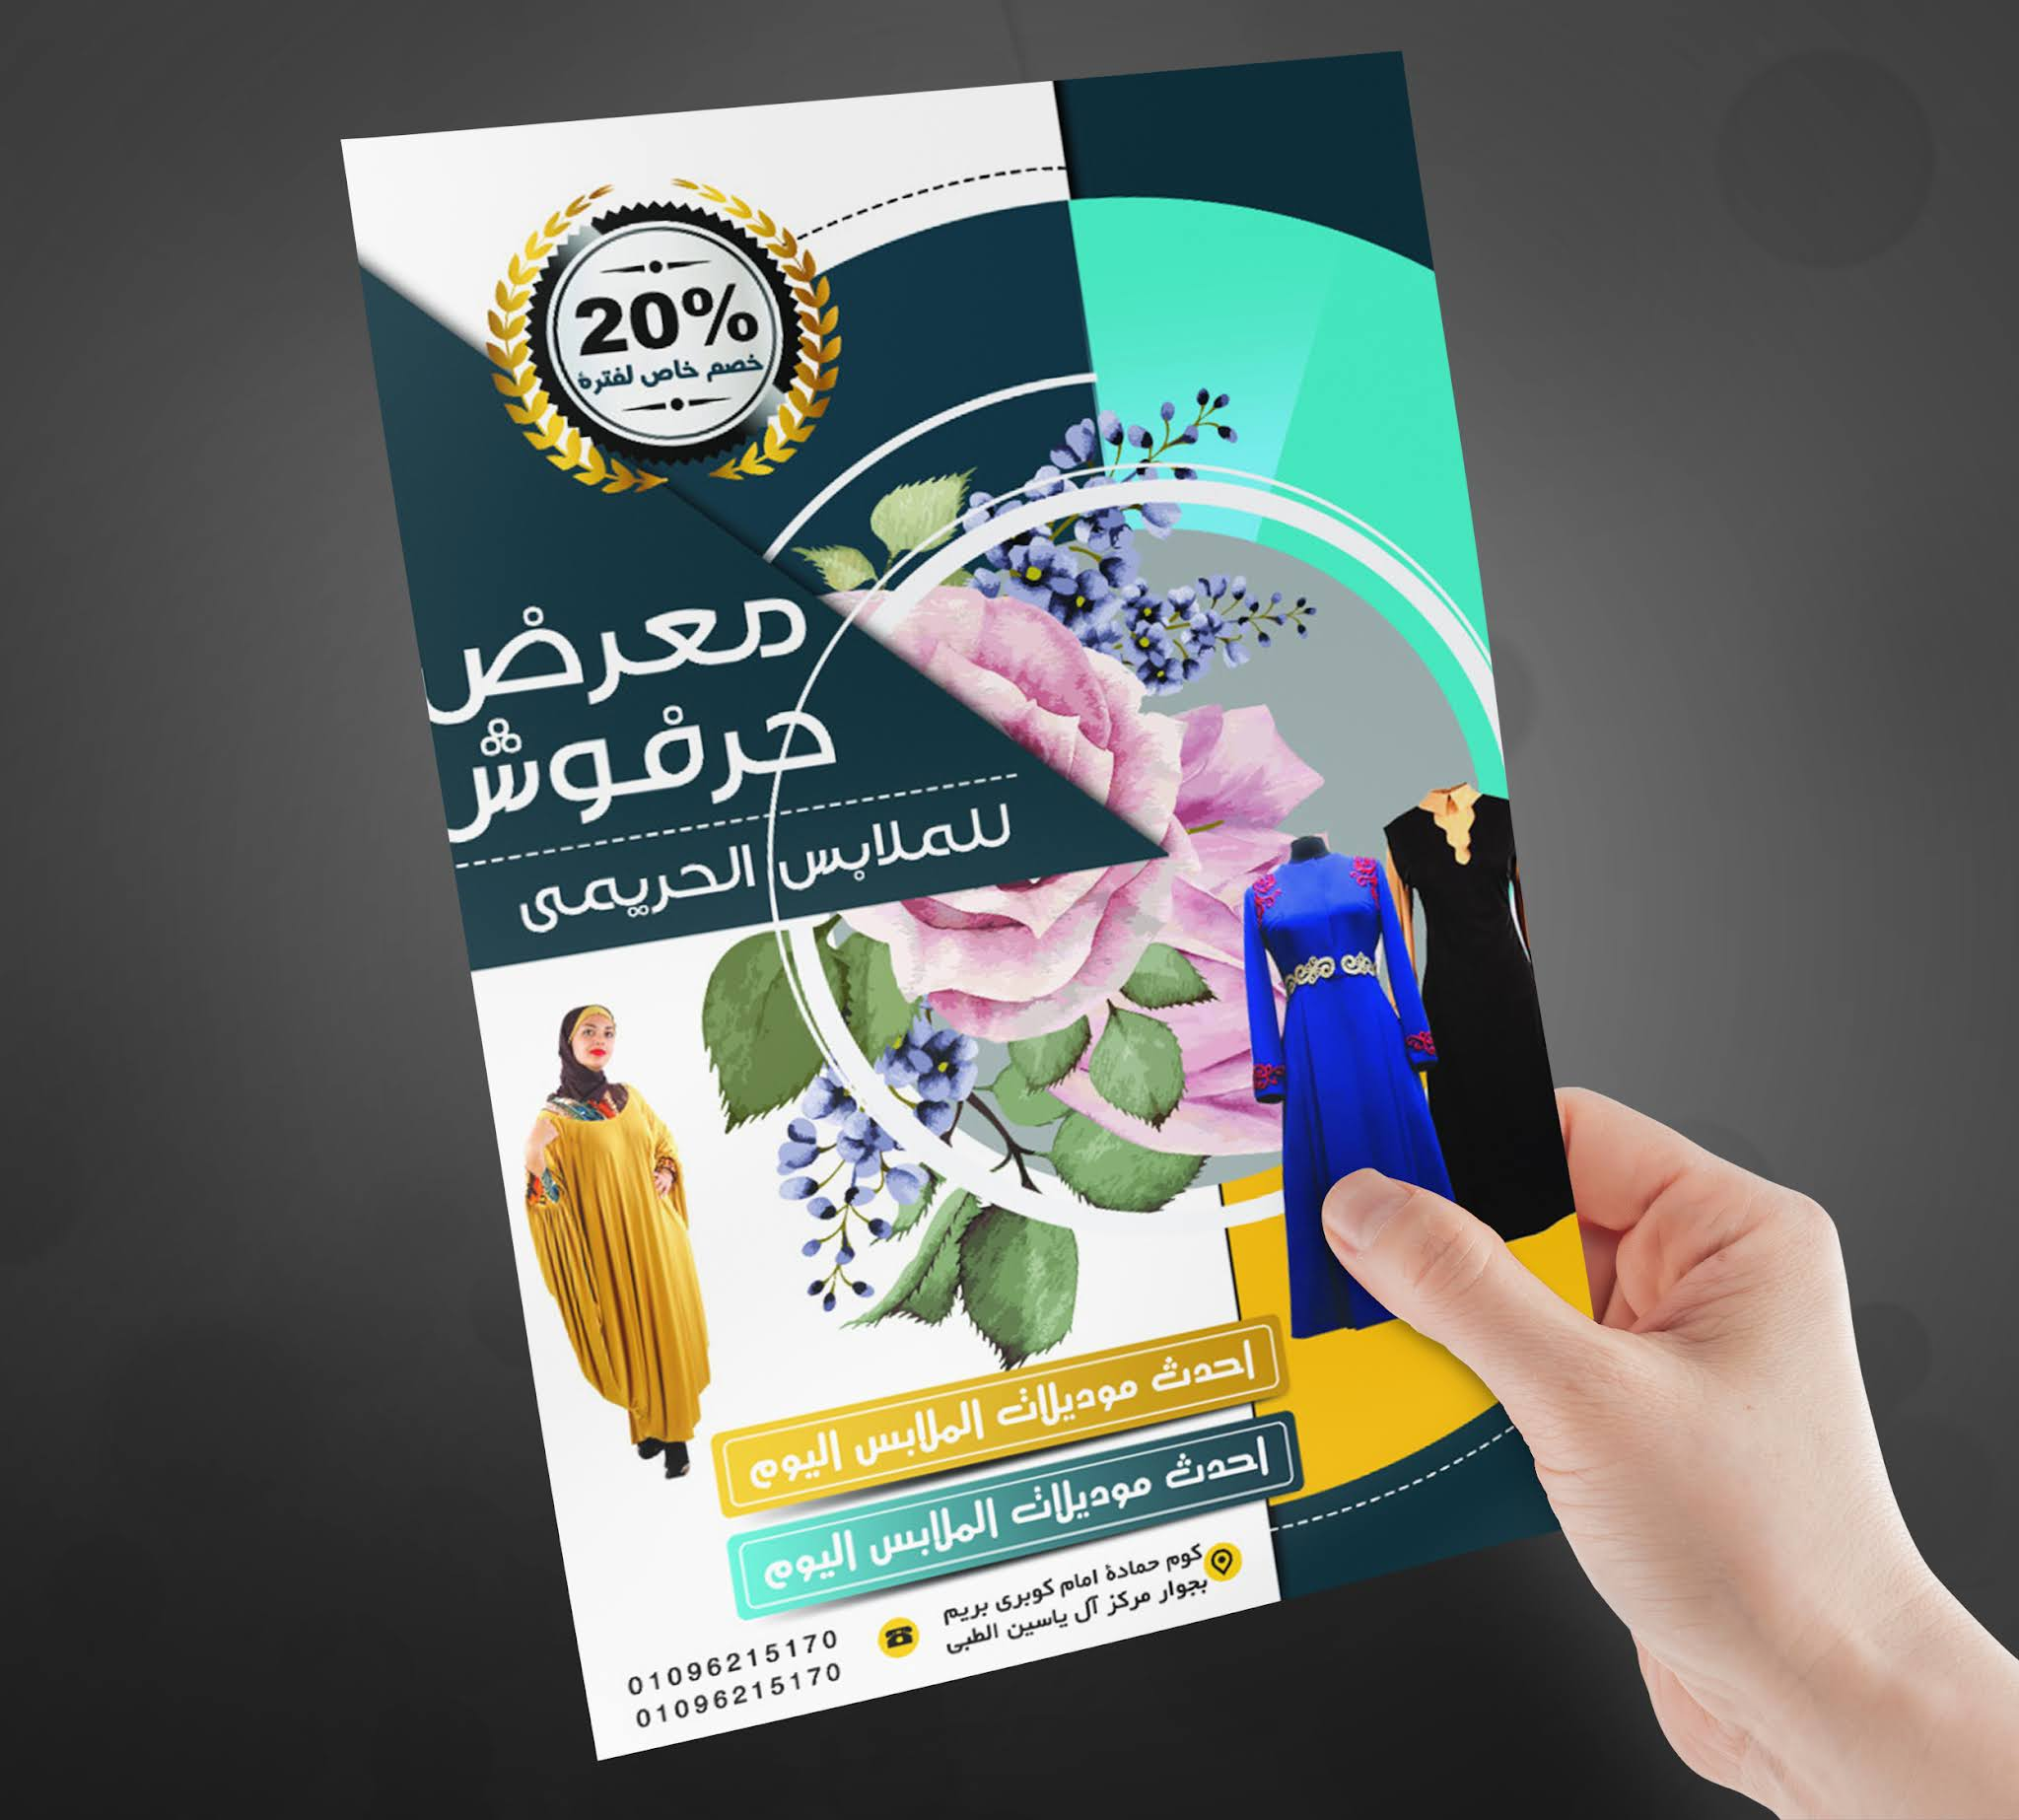 Download professional flyer psd poster for a women's clothing store